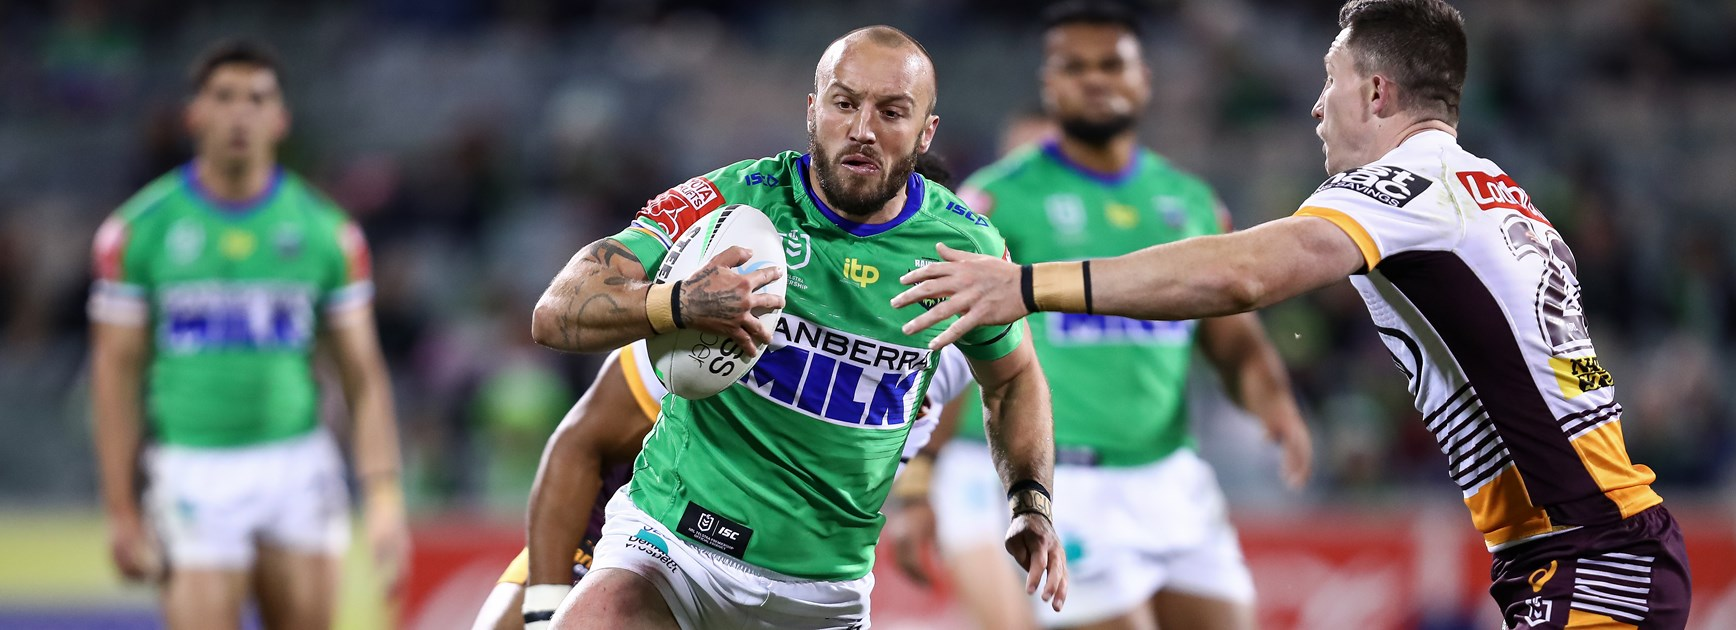 Hodgson chasing finals mentality to bring down Storm